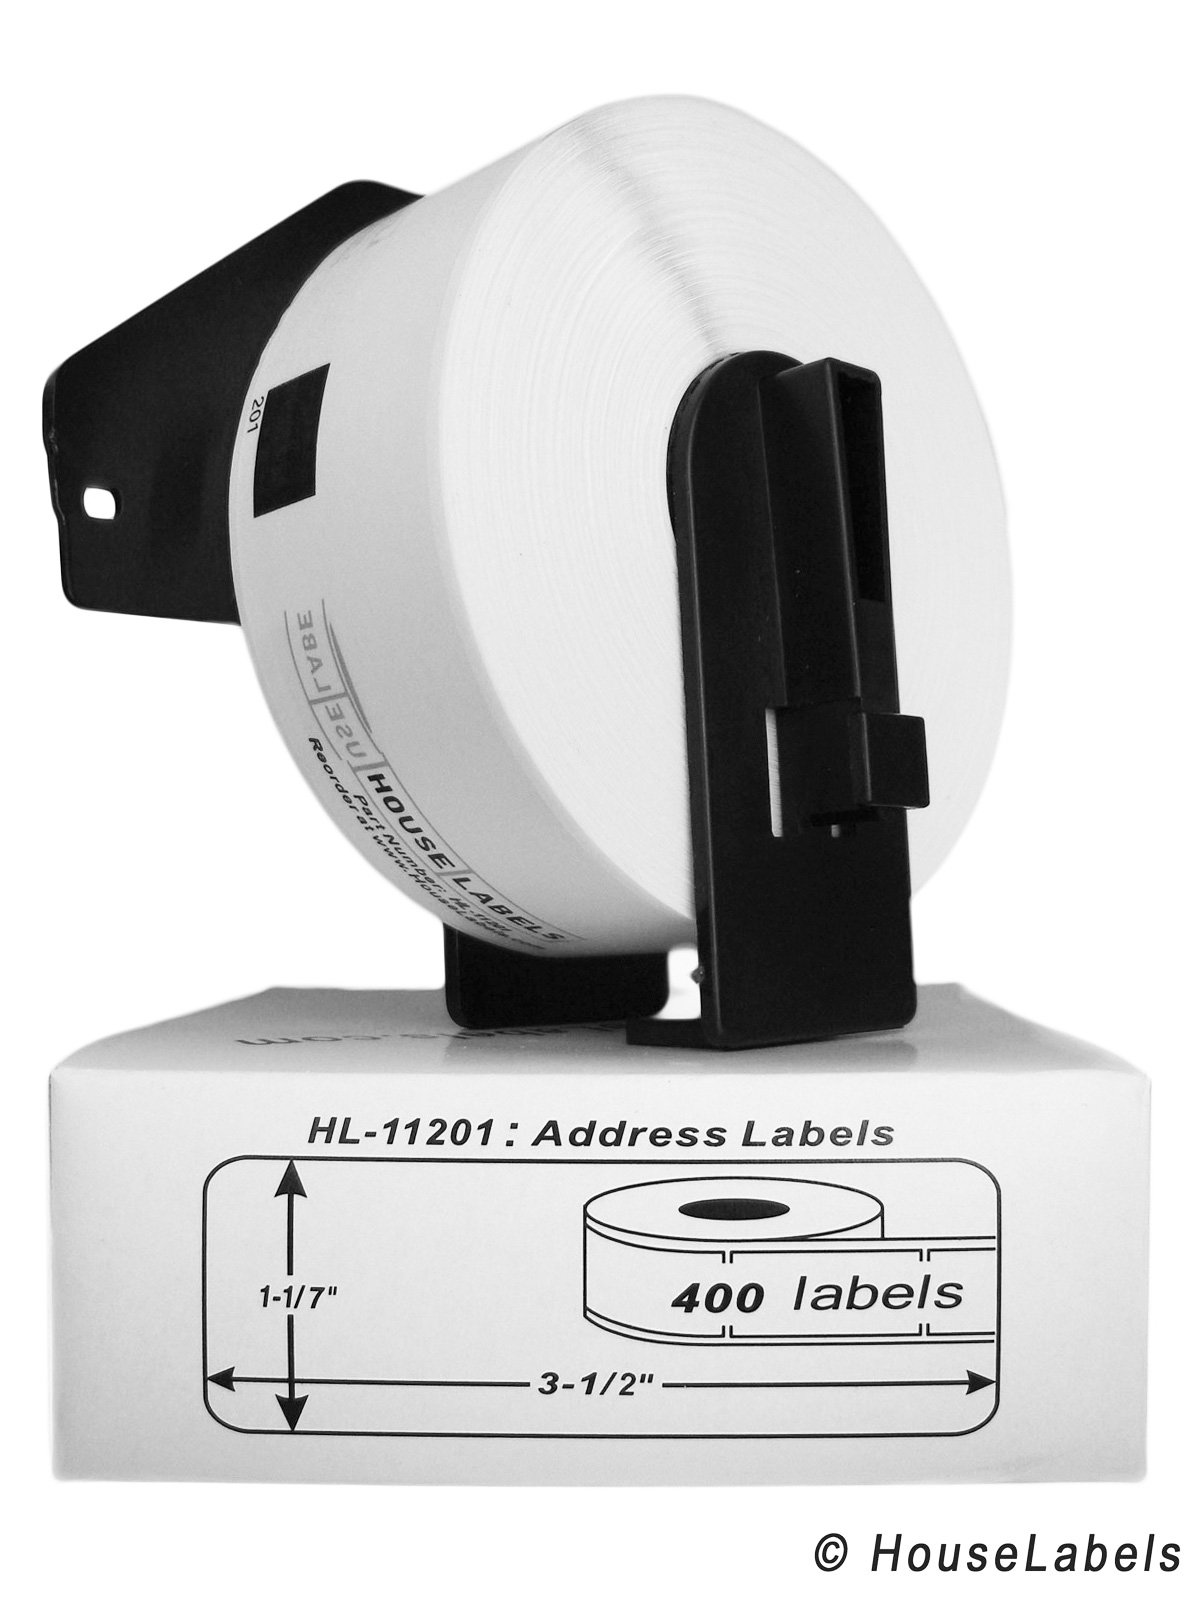 5 Rolls; 400 Labels Per Roll of HouseLabels Brother-compatible Dk-1201 Address Labels with ONE (1) Reusable Black Cartridge (1-1/7'' X 3-1/2''; 29mm90mm) -- BPA Free!